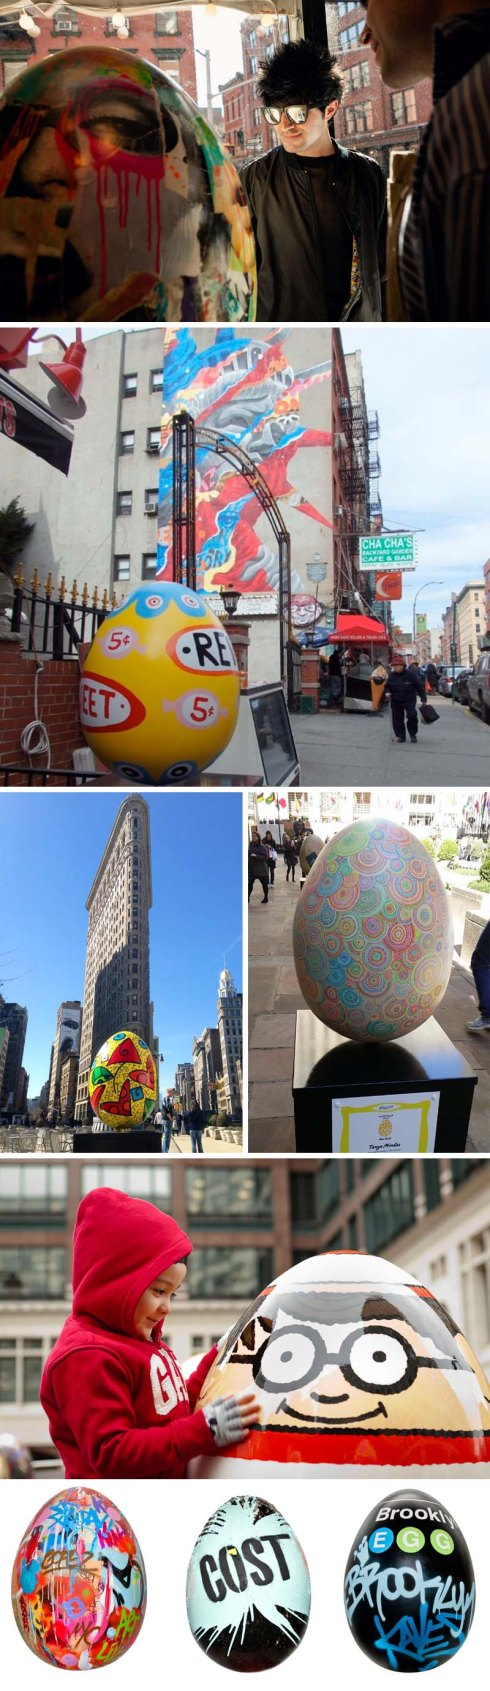 #TheBigEggHuntNY, Faberge Eggs painted by over 200 artists and hidden around NYC, Spring 2014, public art